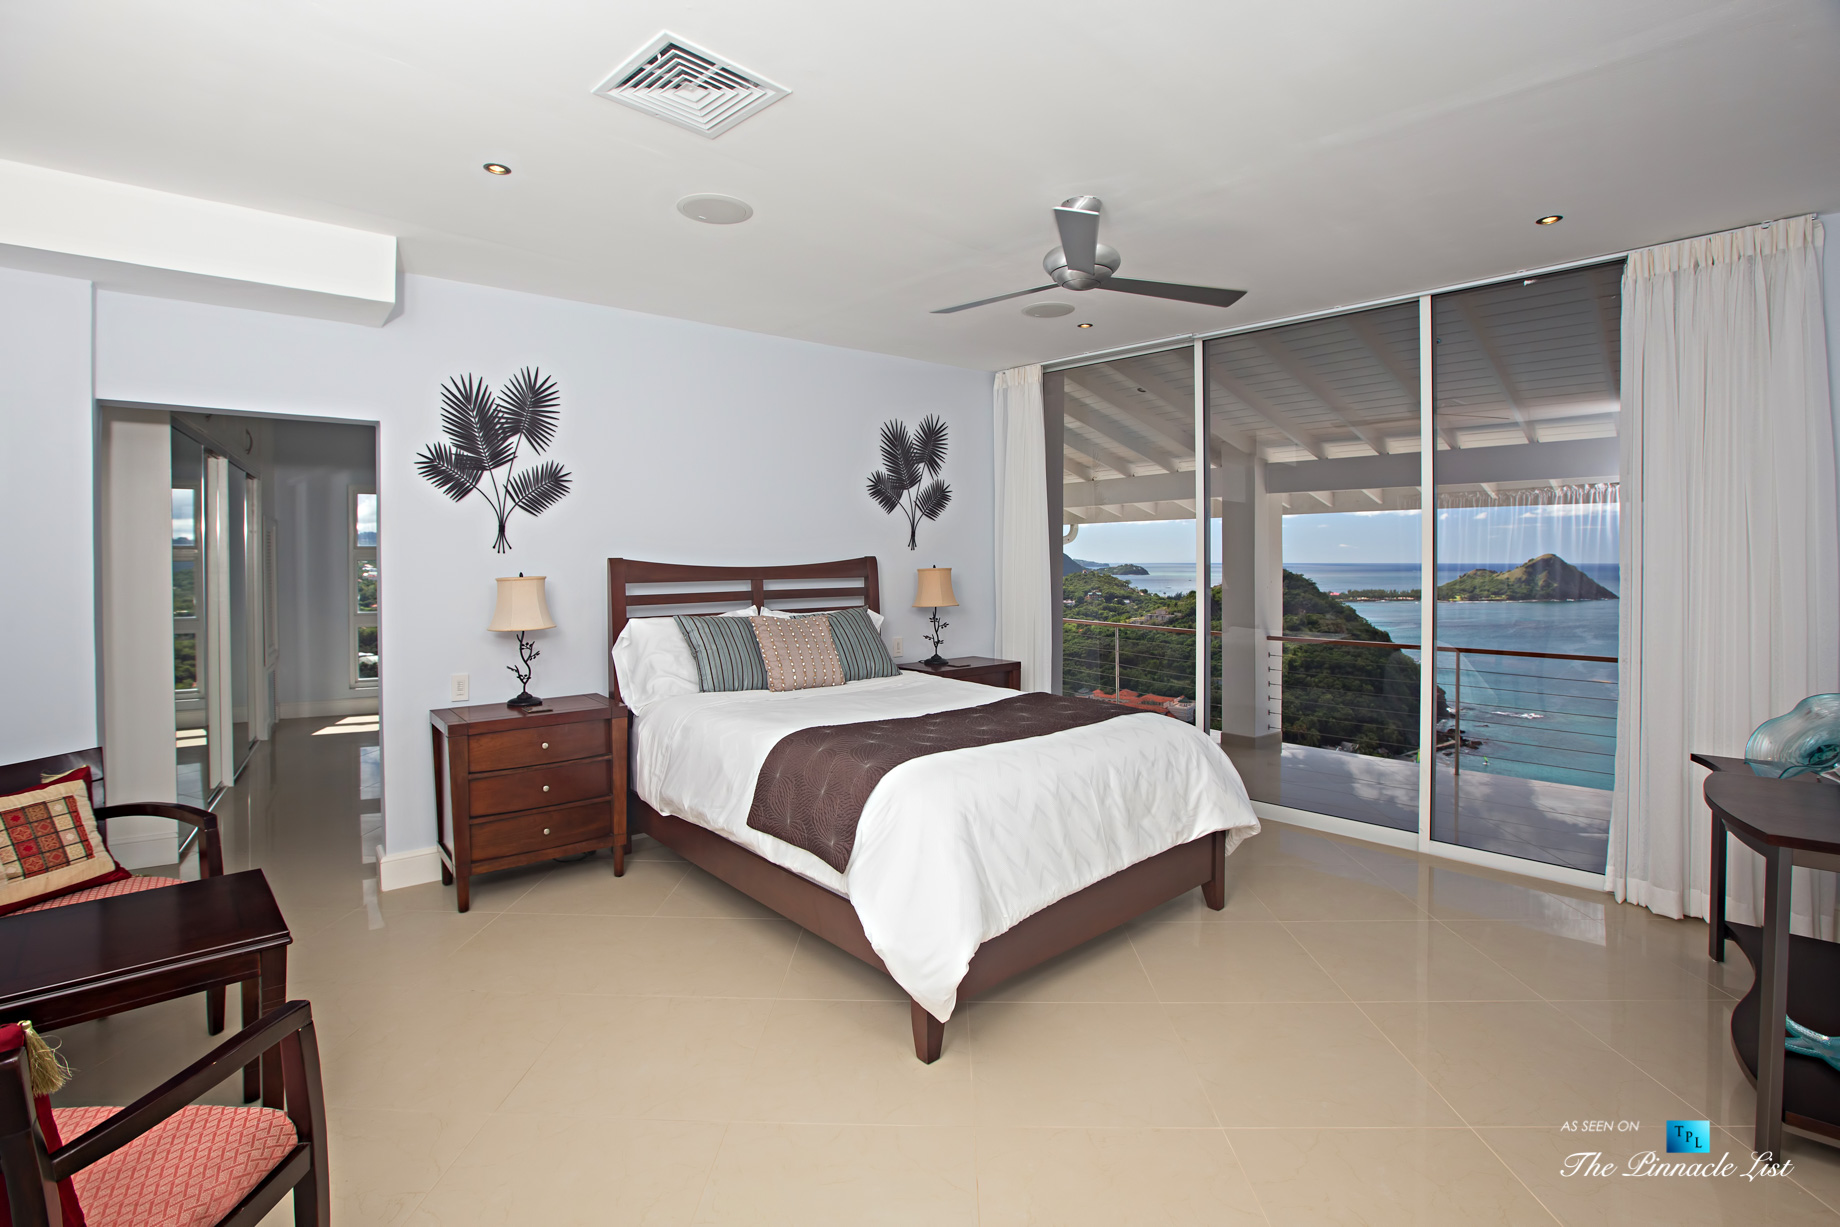 Akasha Luxury Caribbean Villa - Cap Estate, St. Lucia - Bedroom with Ocean View - Luxury Real Estate - Premier Oceanview Home